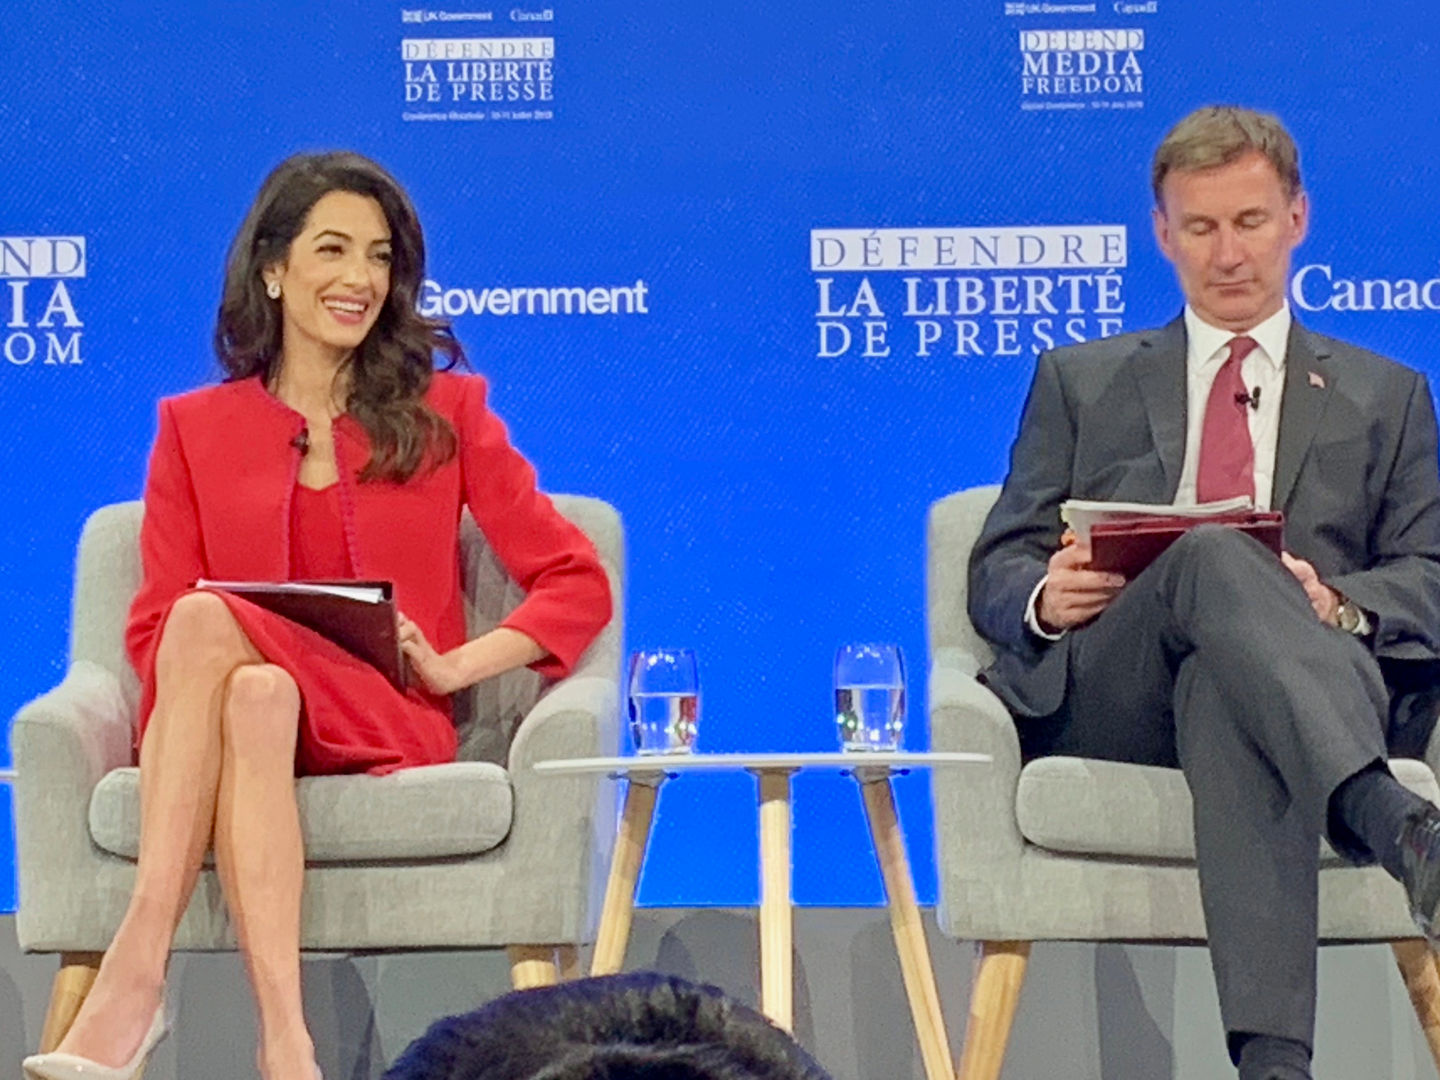 Amal Clooney and Jeremy Hunt (ex-Foreign Secretary)